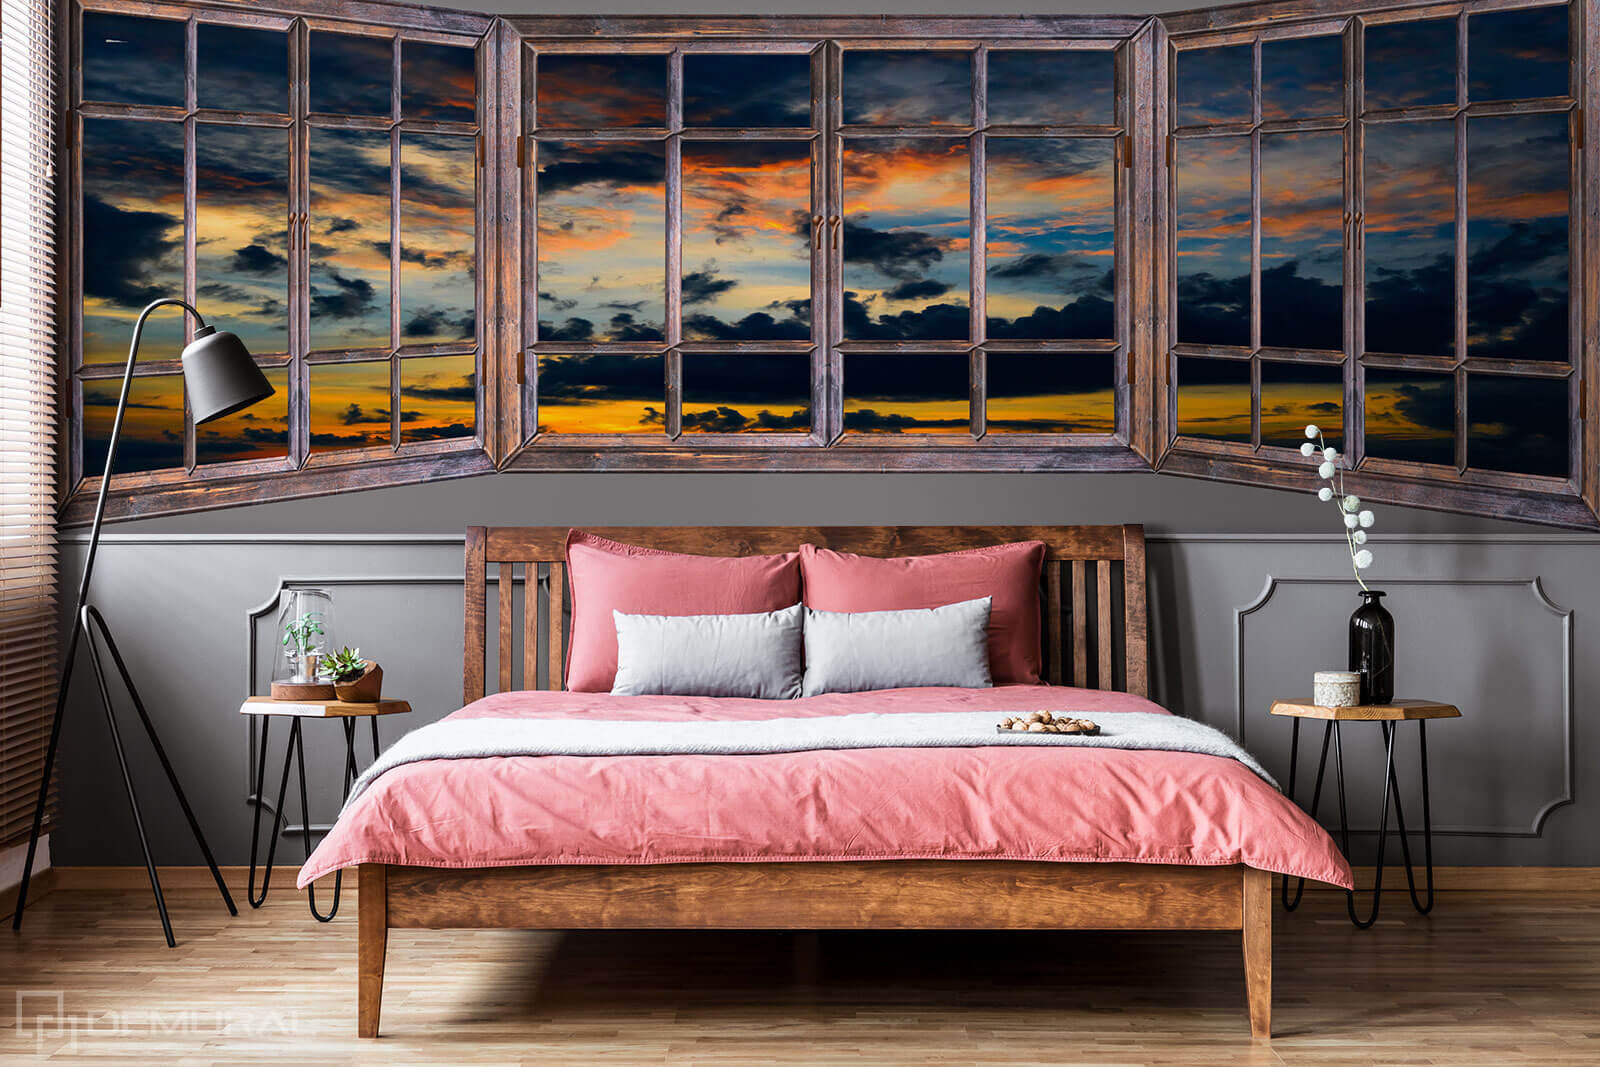 Photo wallpaper Sunset through the window - Photo wallpaper window - Demural